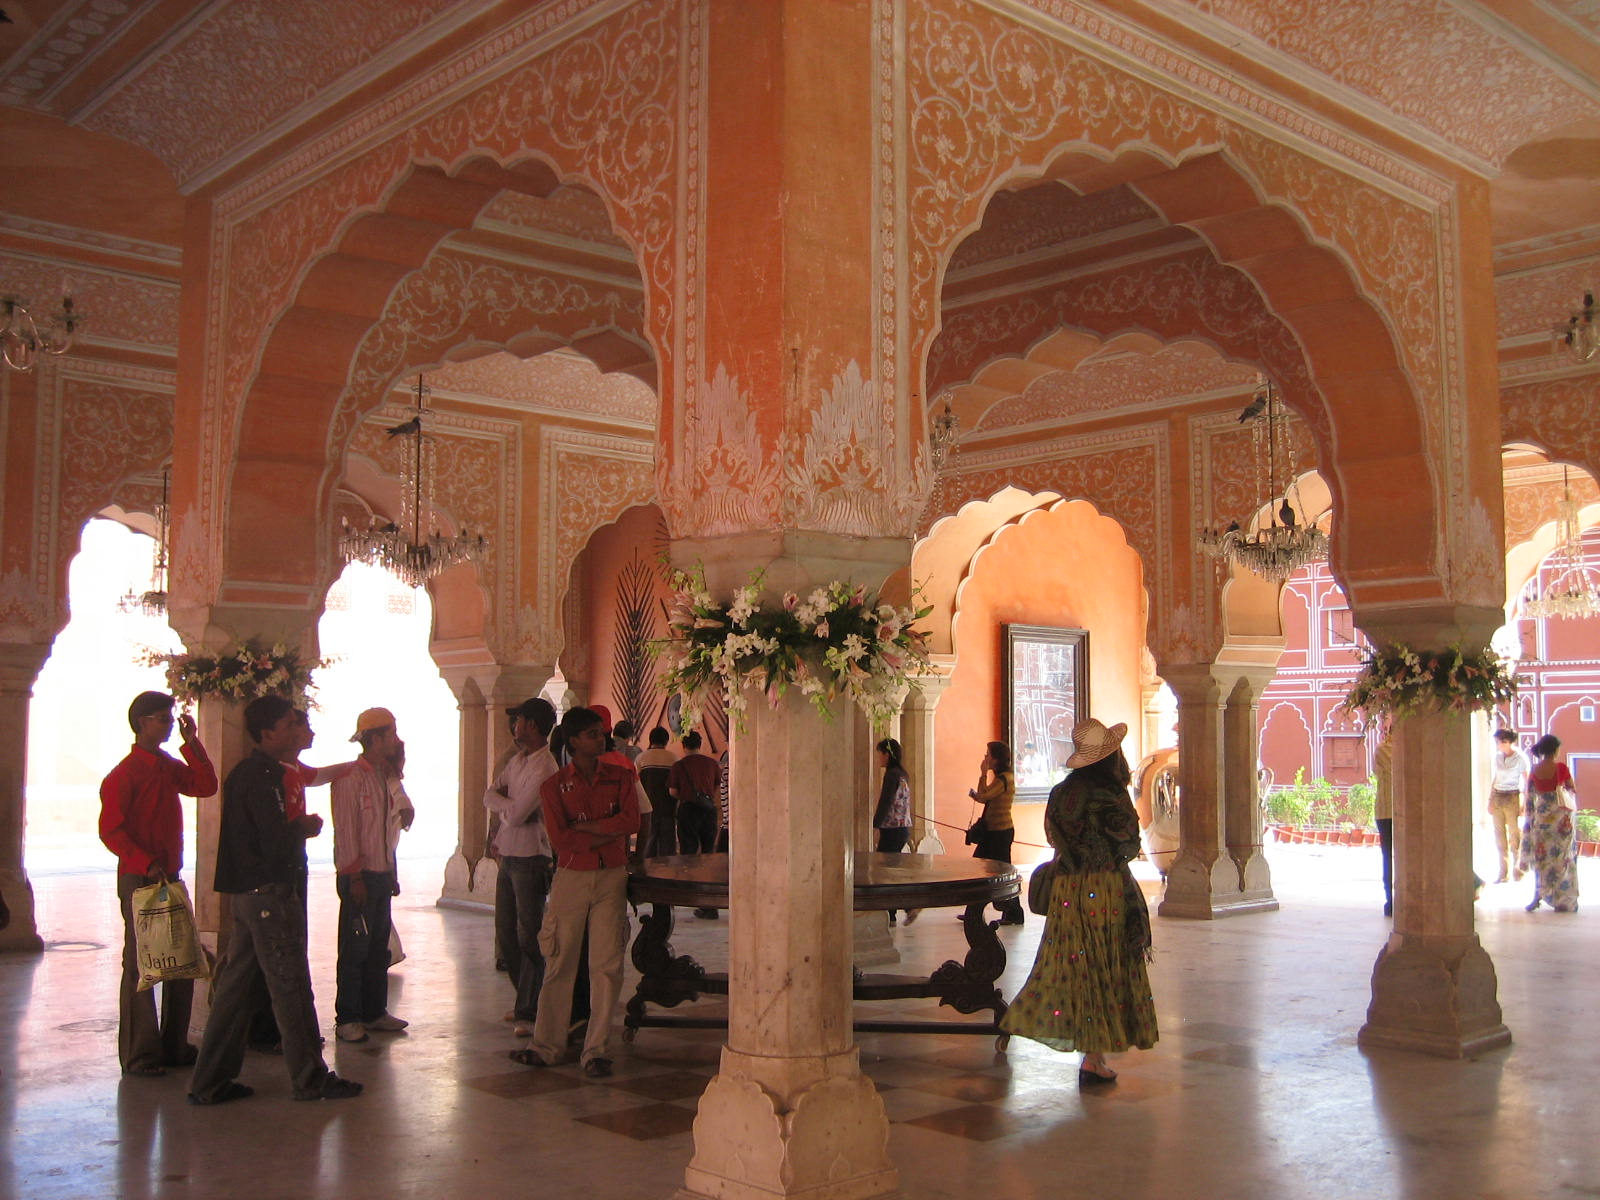 Hawa mahal historical facts and pictures the history hub for Interior pictures